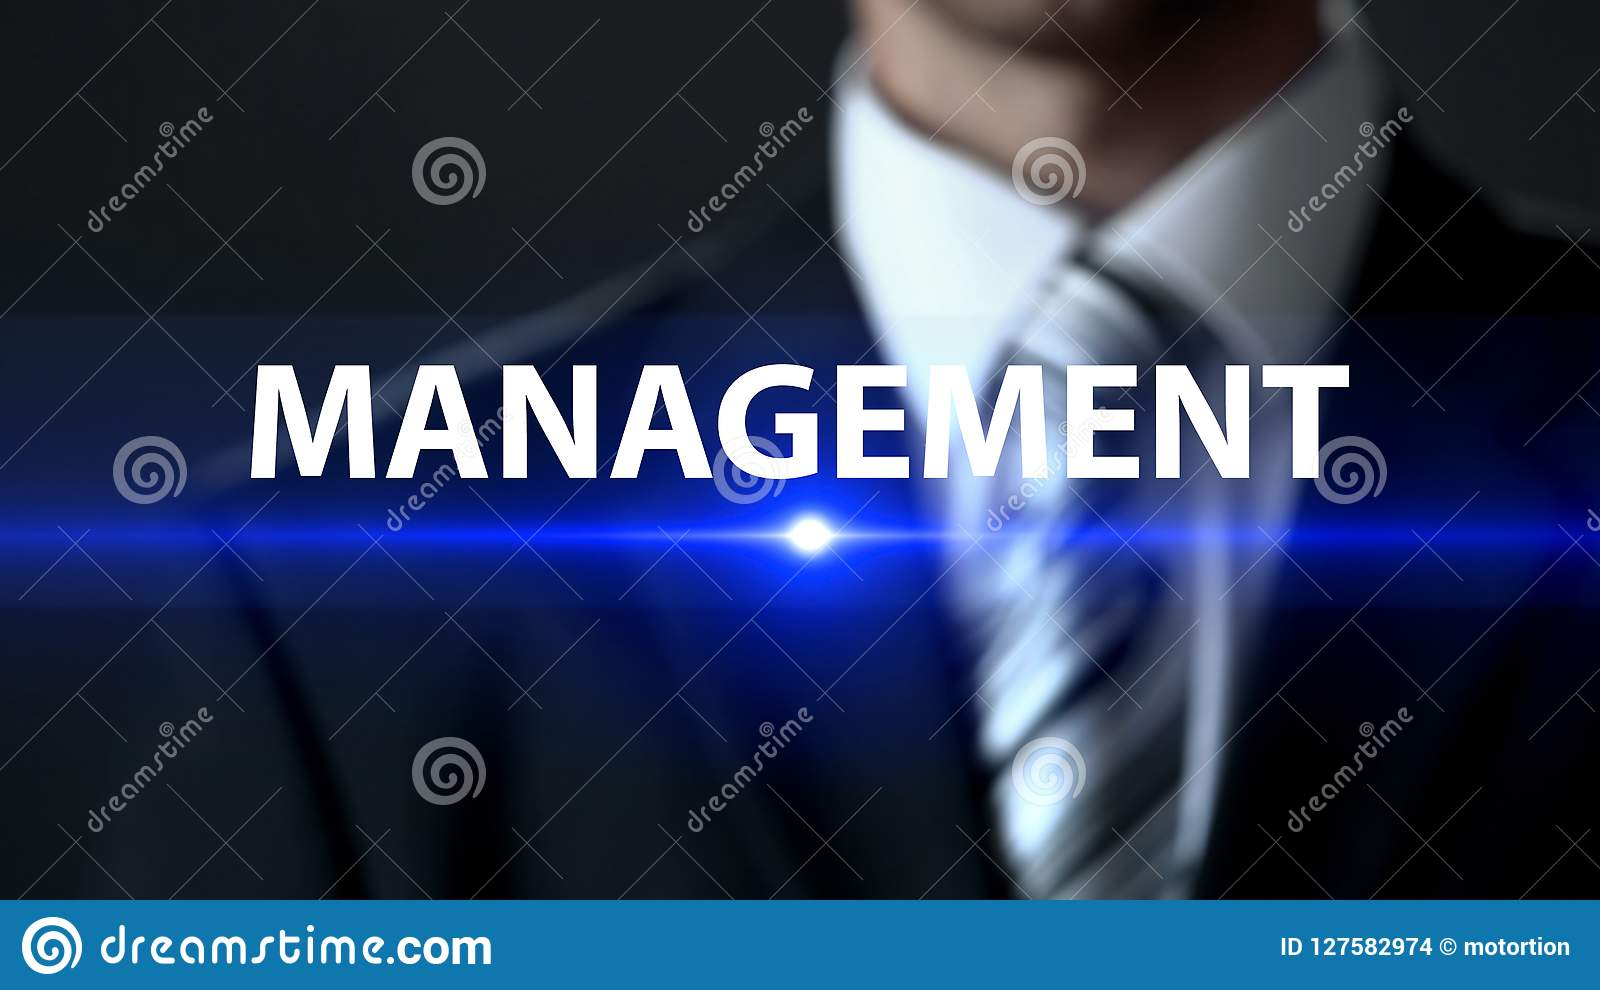 Management, male in suit standing in front of screen, business strategy, company